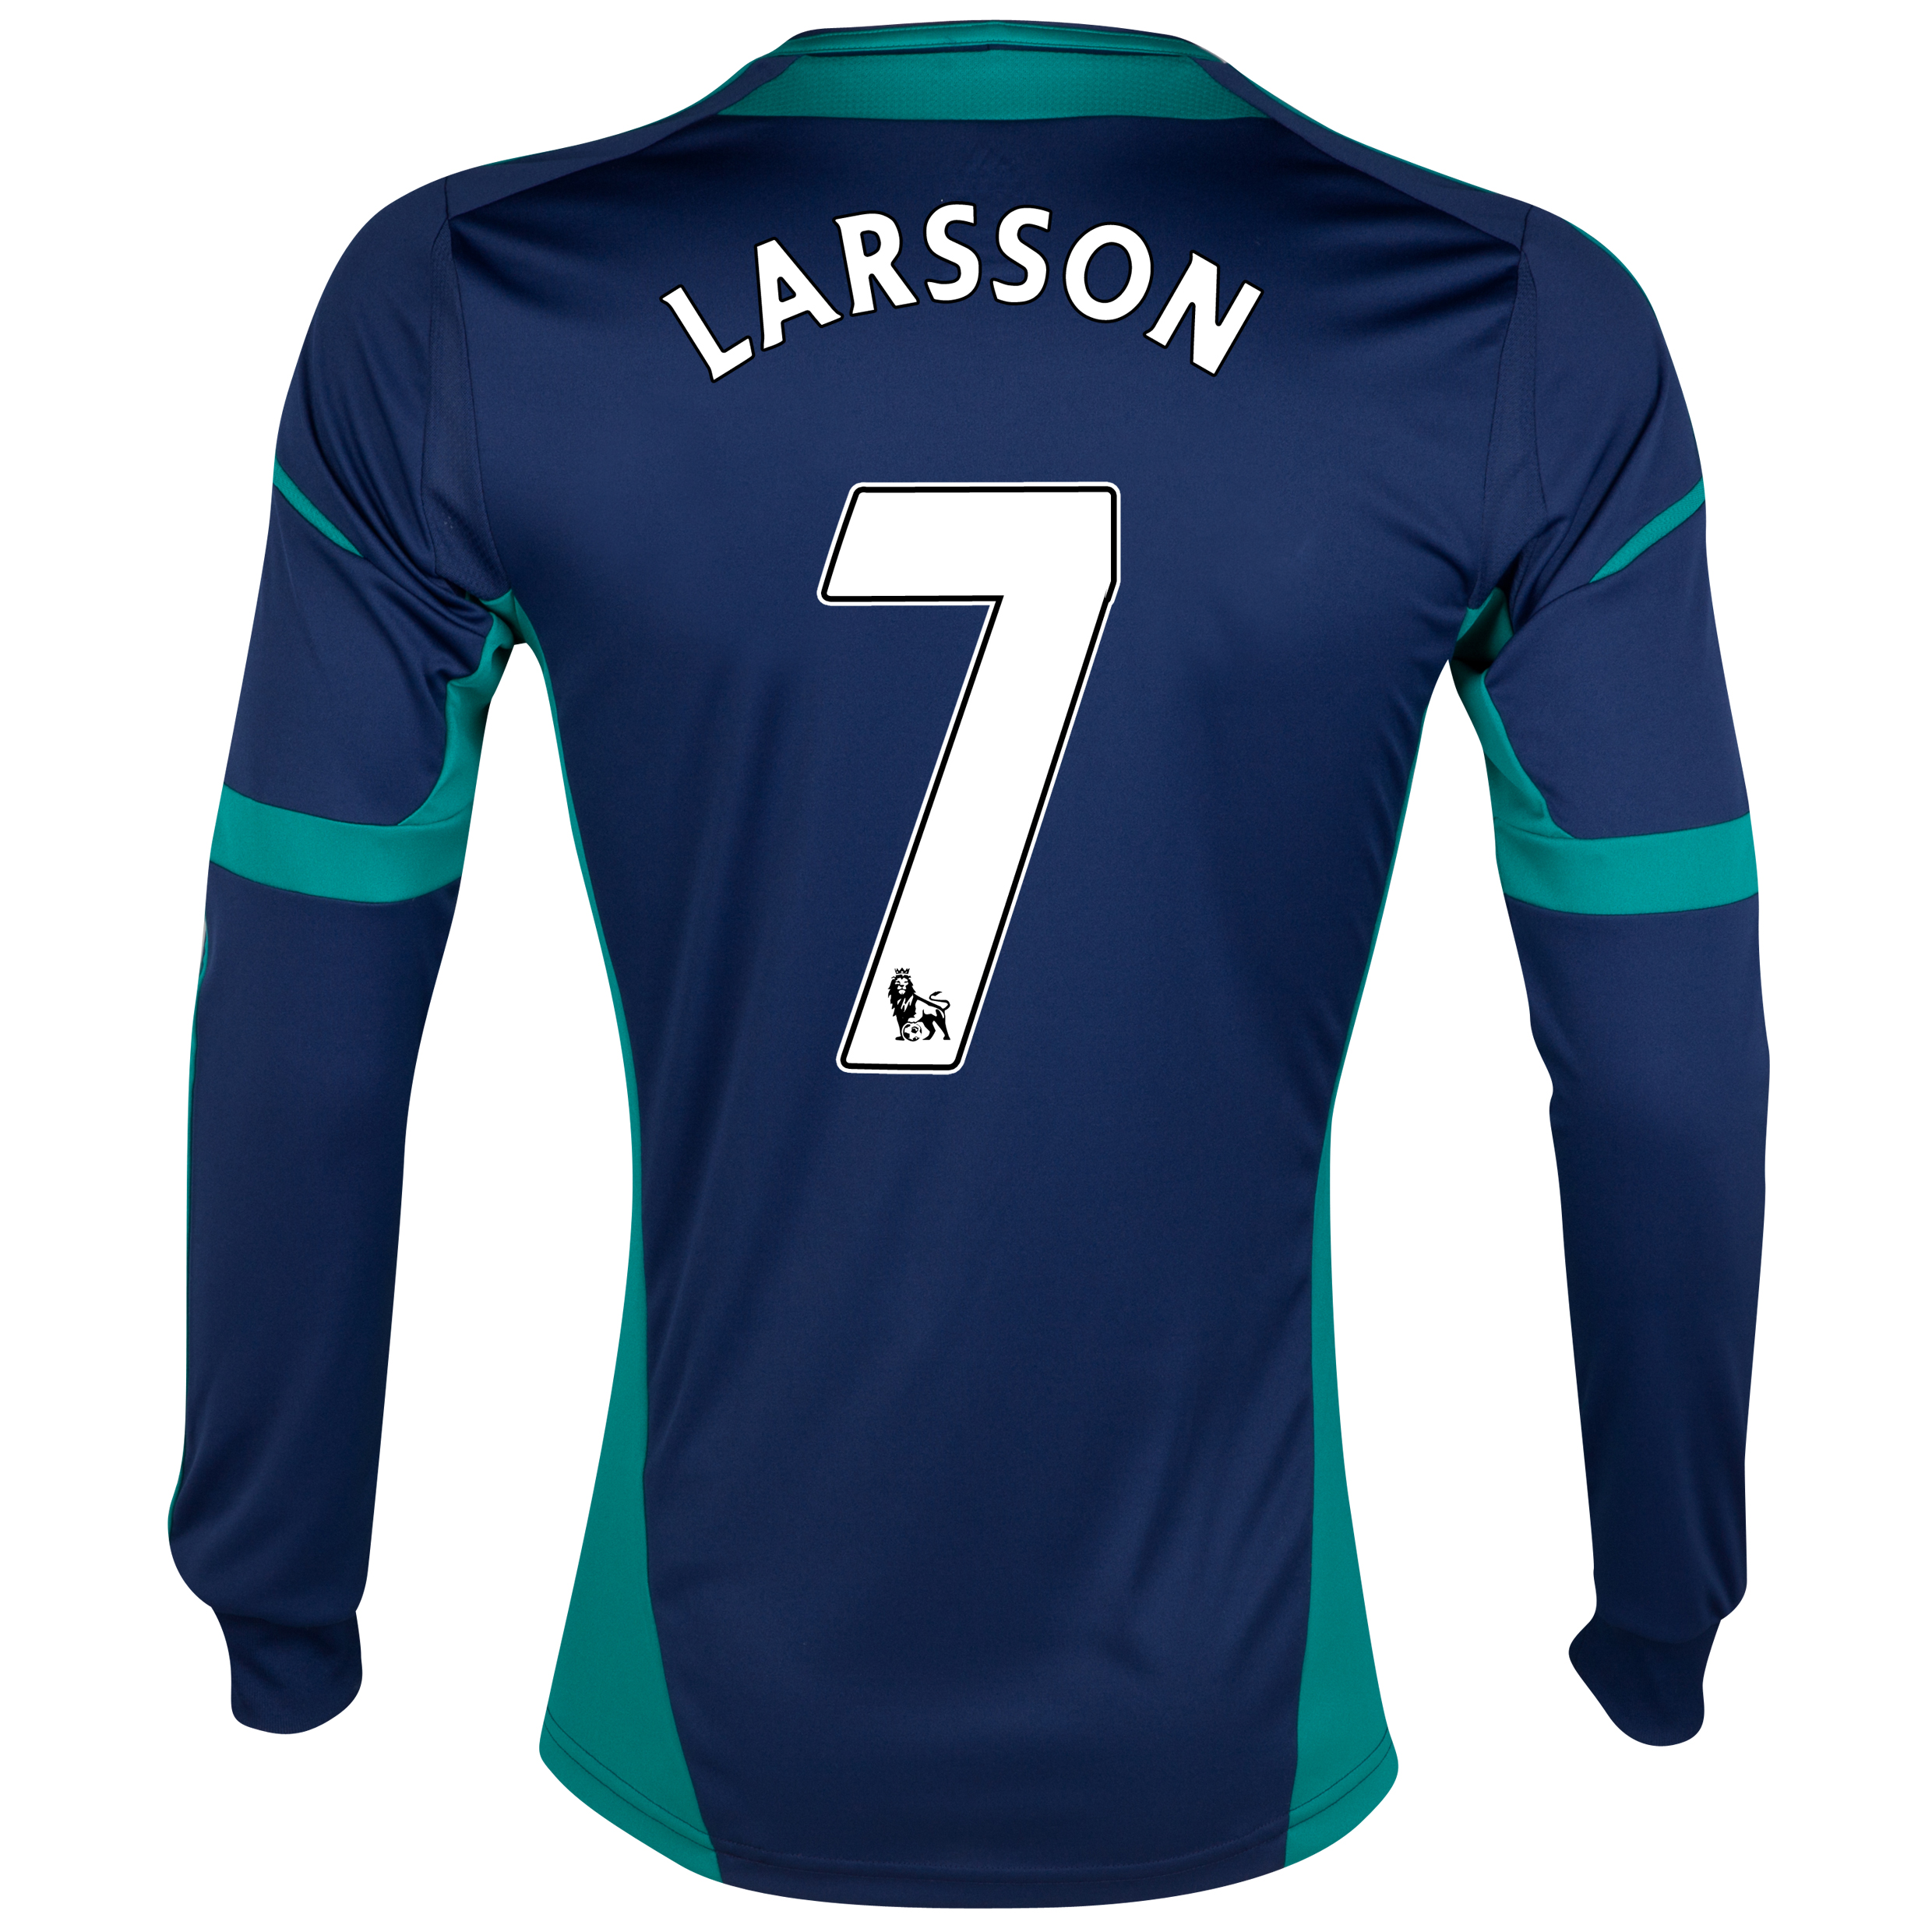 Sunderland Away Shirt 2012/13 - Long Sleeved - Junior with Larsson 7 printing